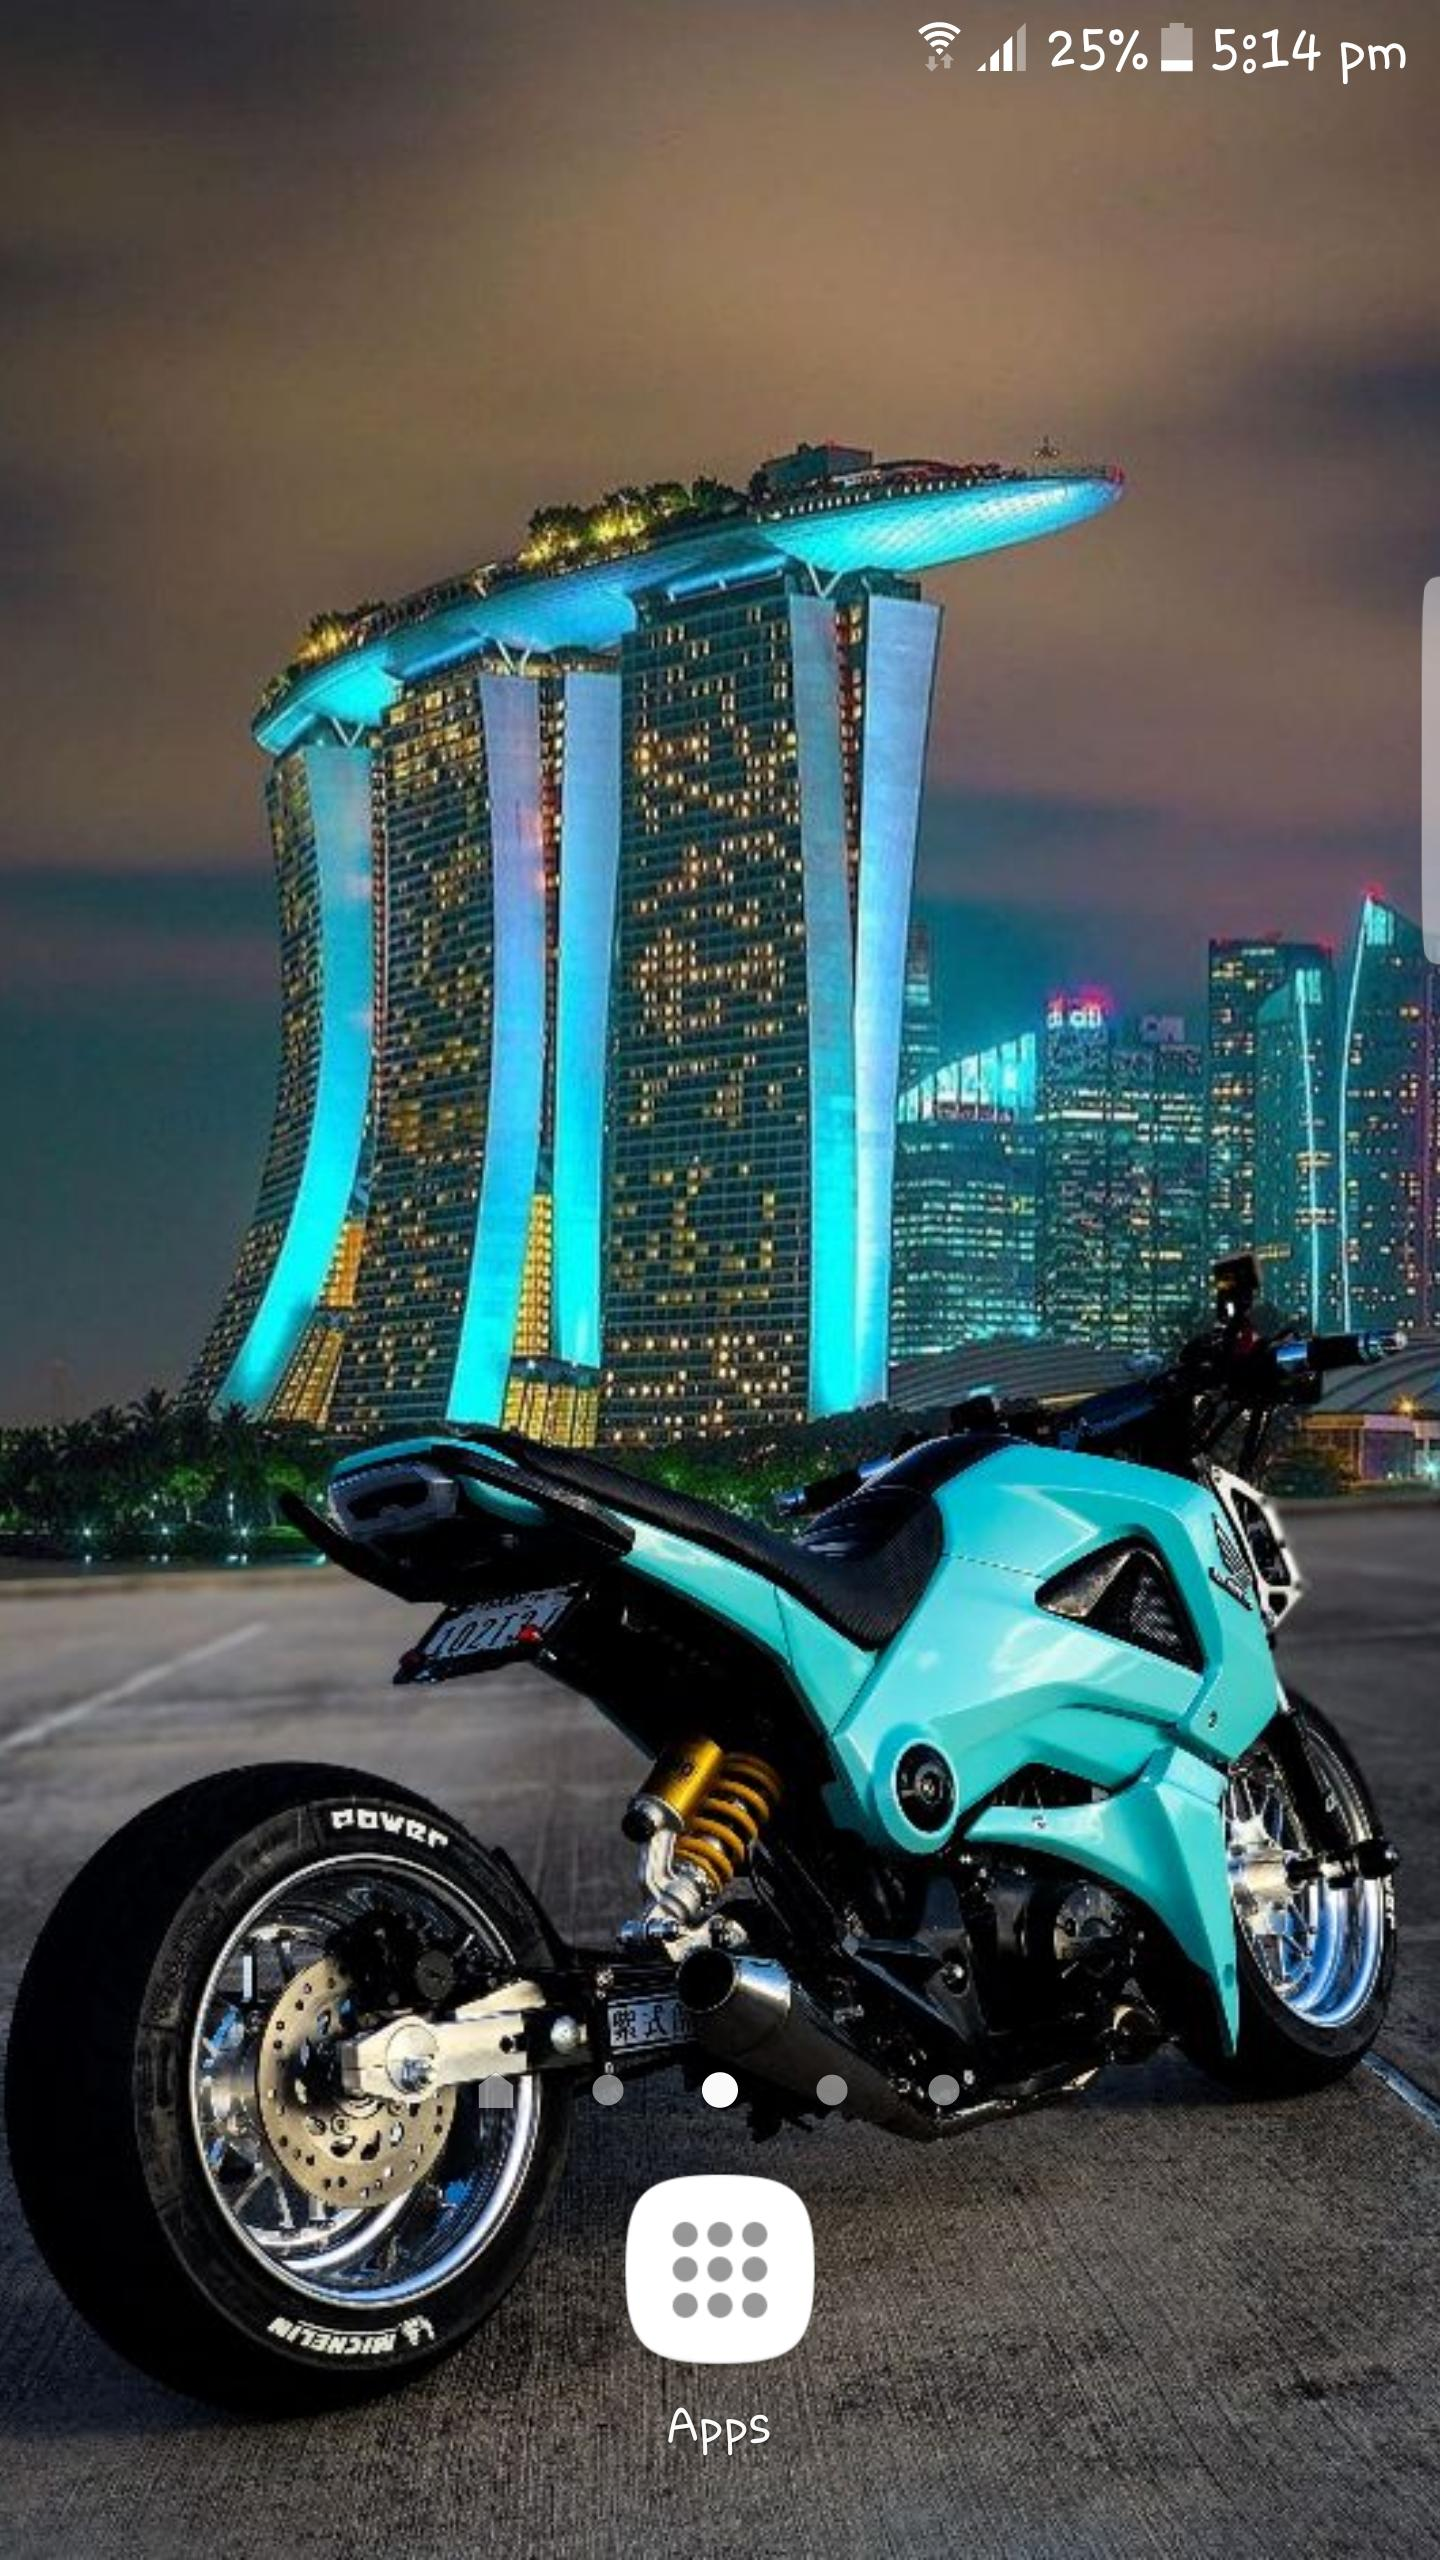 Best Bikes Wallpaper Motorcycles Wallpapers Hd For   1440x2560 1440x2560